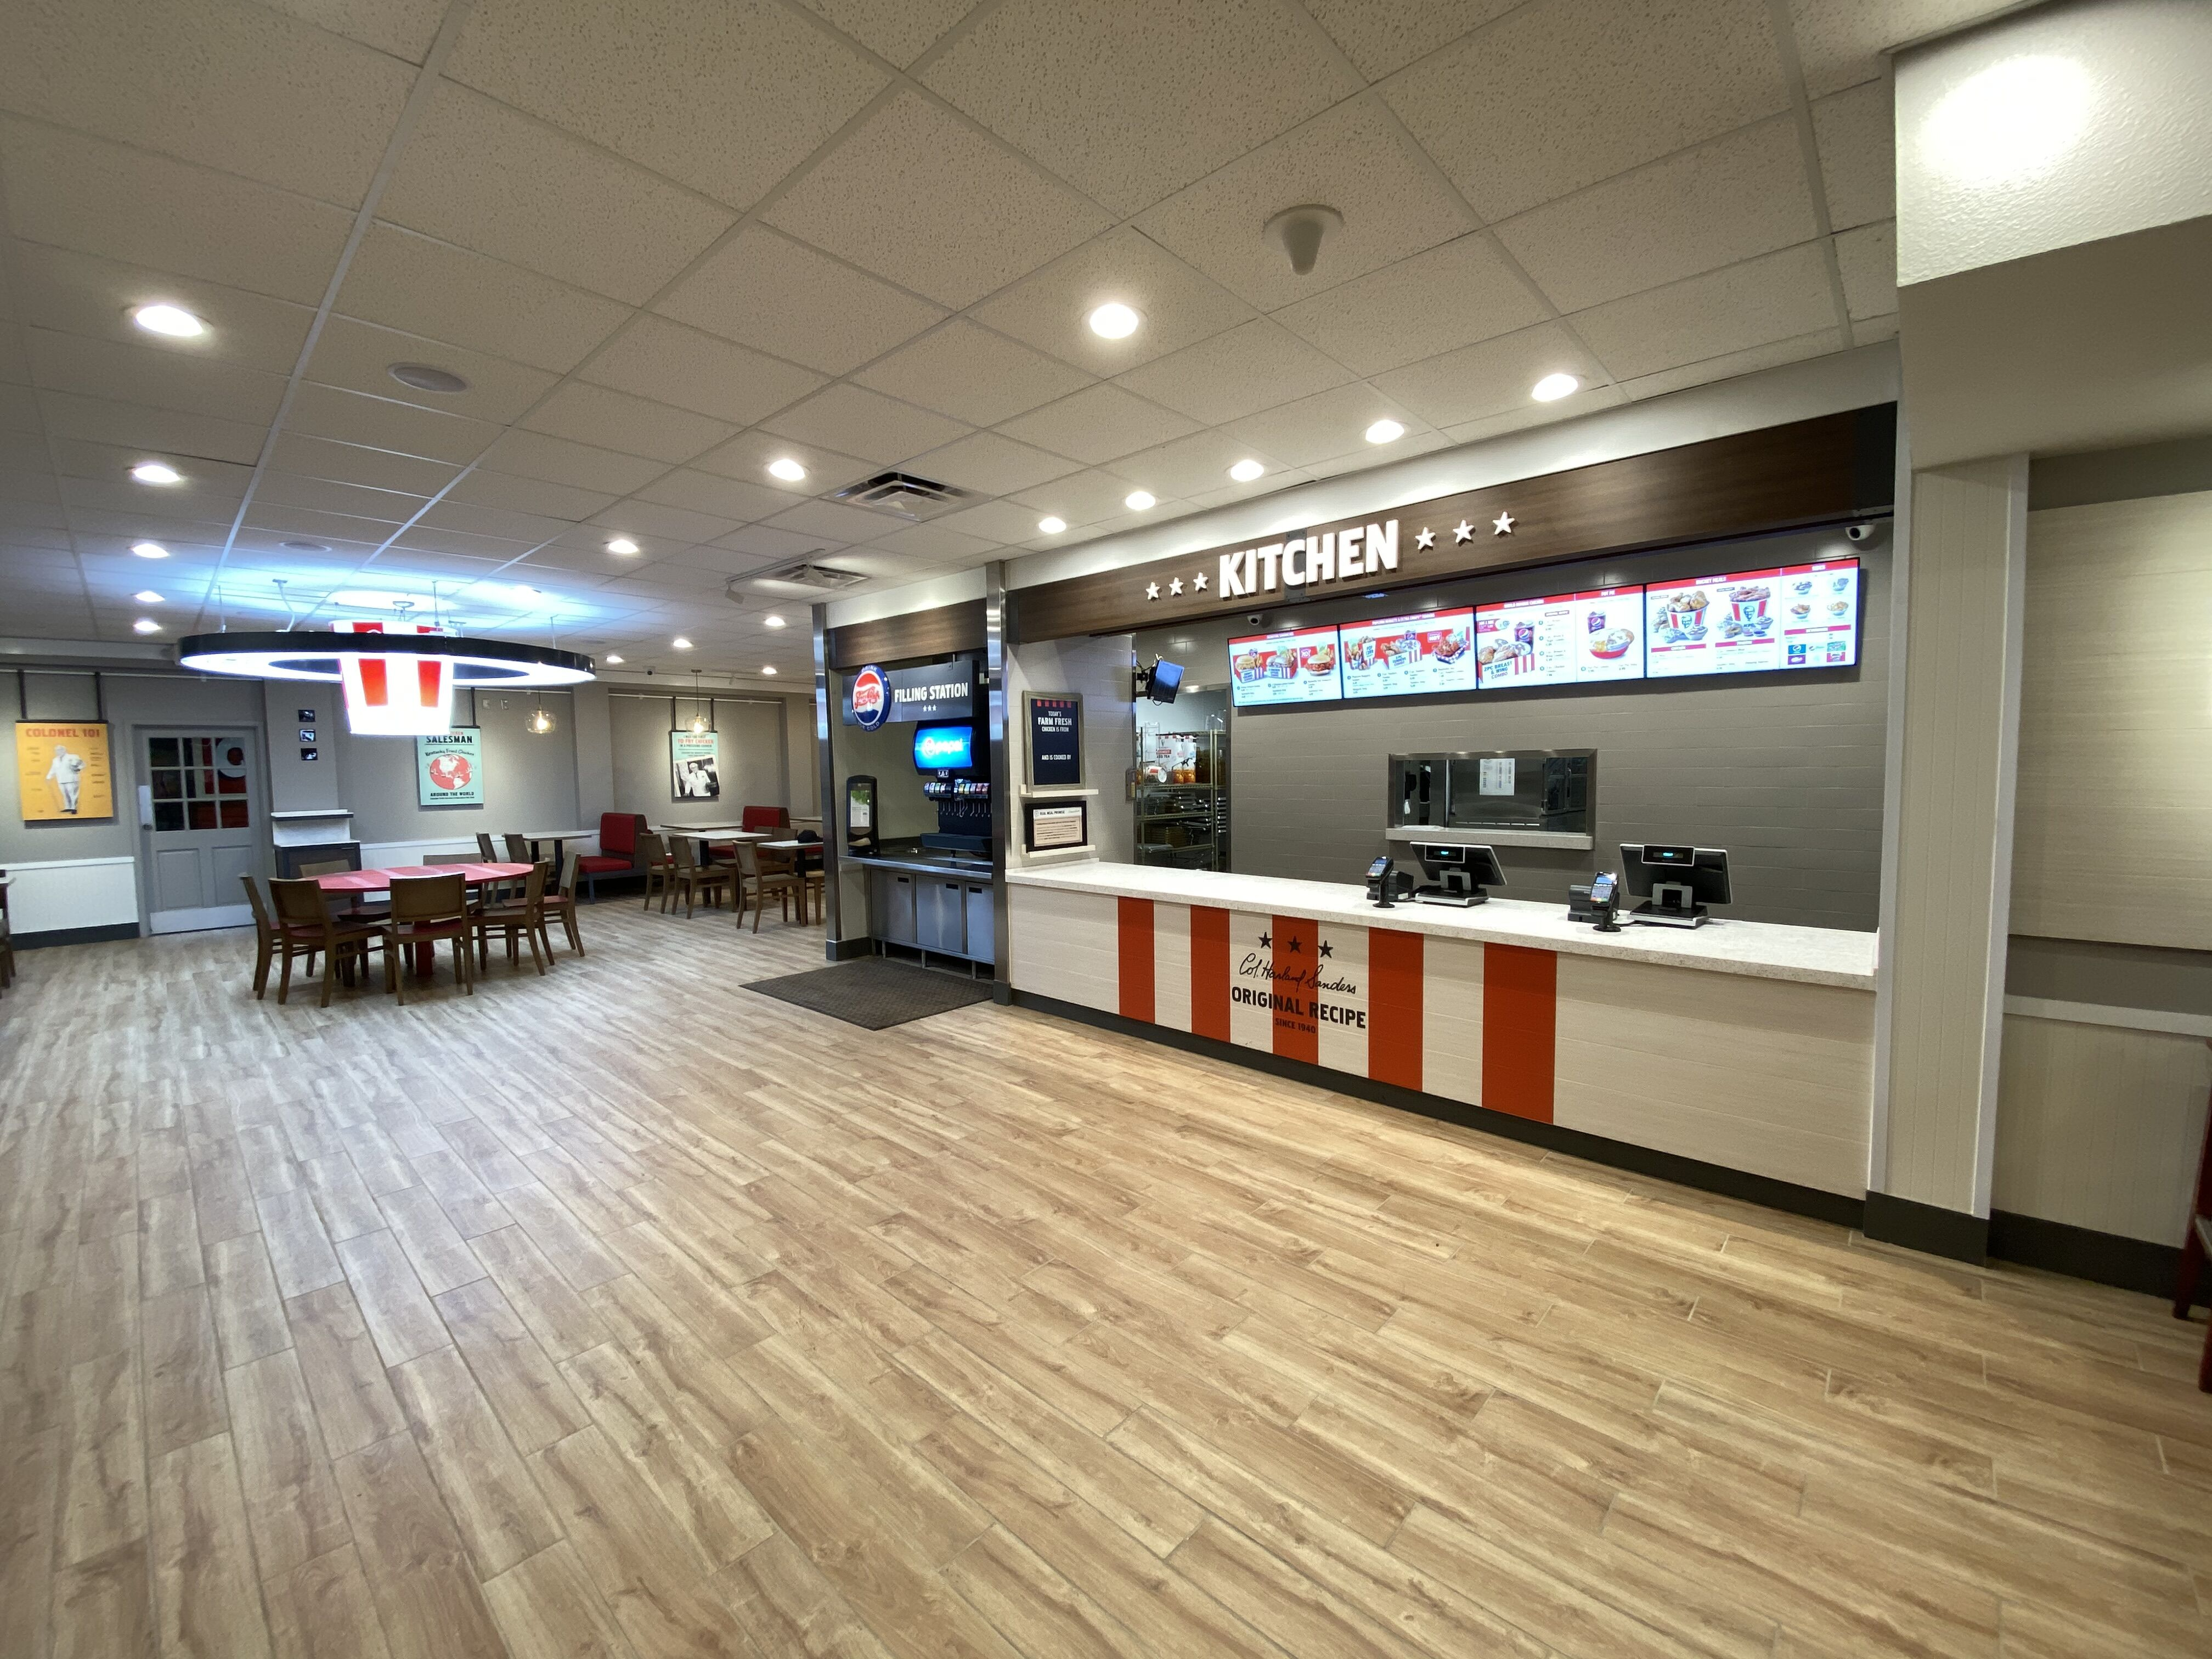 TRAVELCENTERS OF AMERICA OPENS KENTUCKY FRIED CHICKEN® IN GREENWOOD, LOUISIANA TRAVEL CENTER